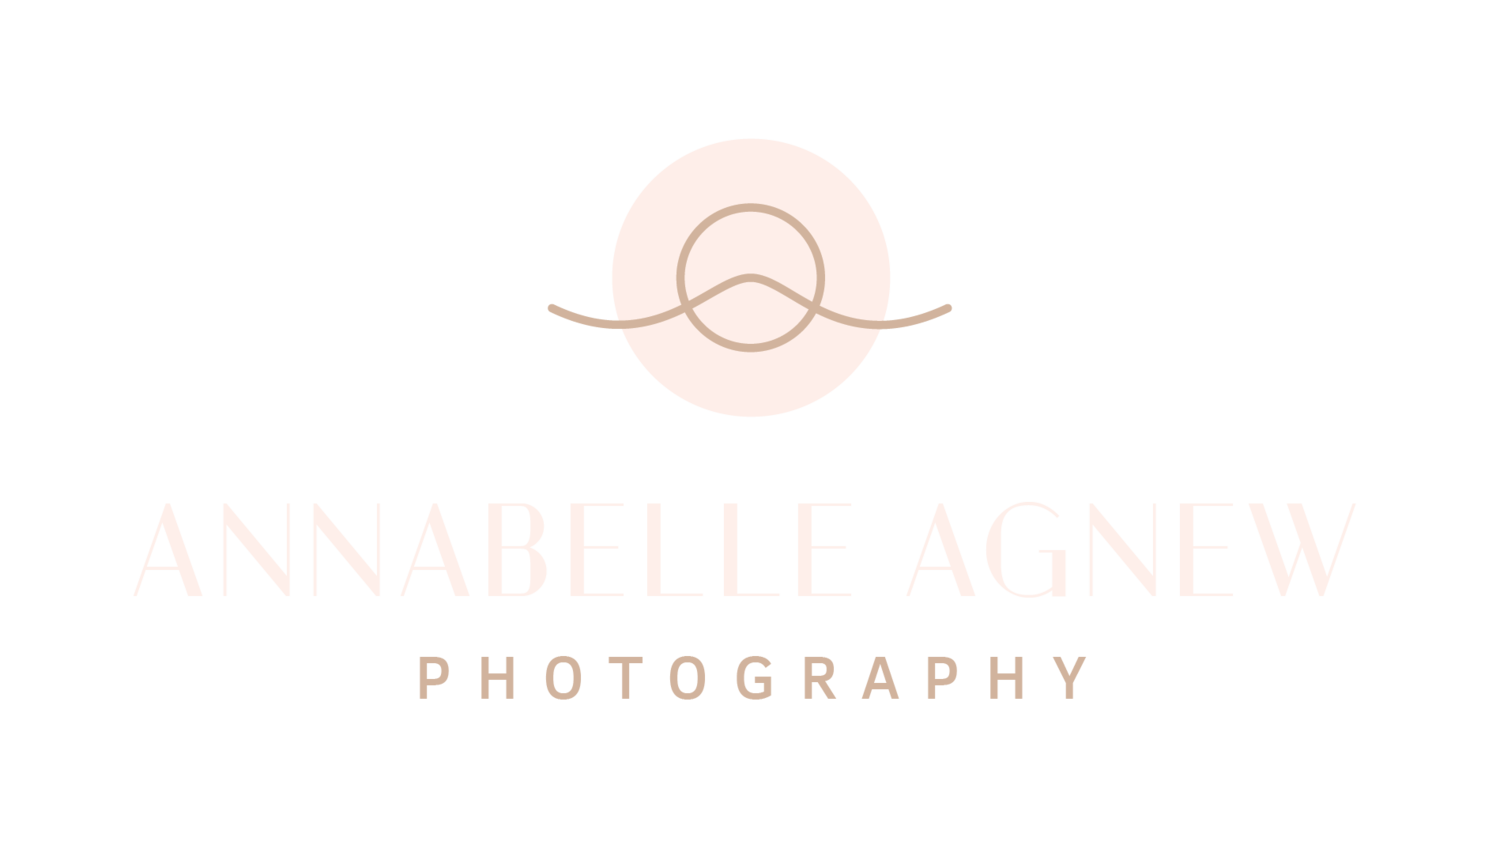 ANNABELLE AGNEW PHOTOGRAPHY